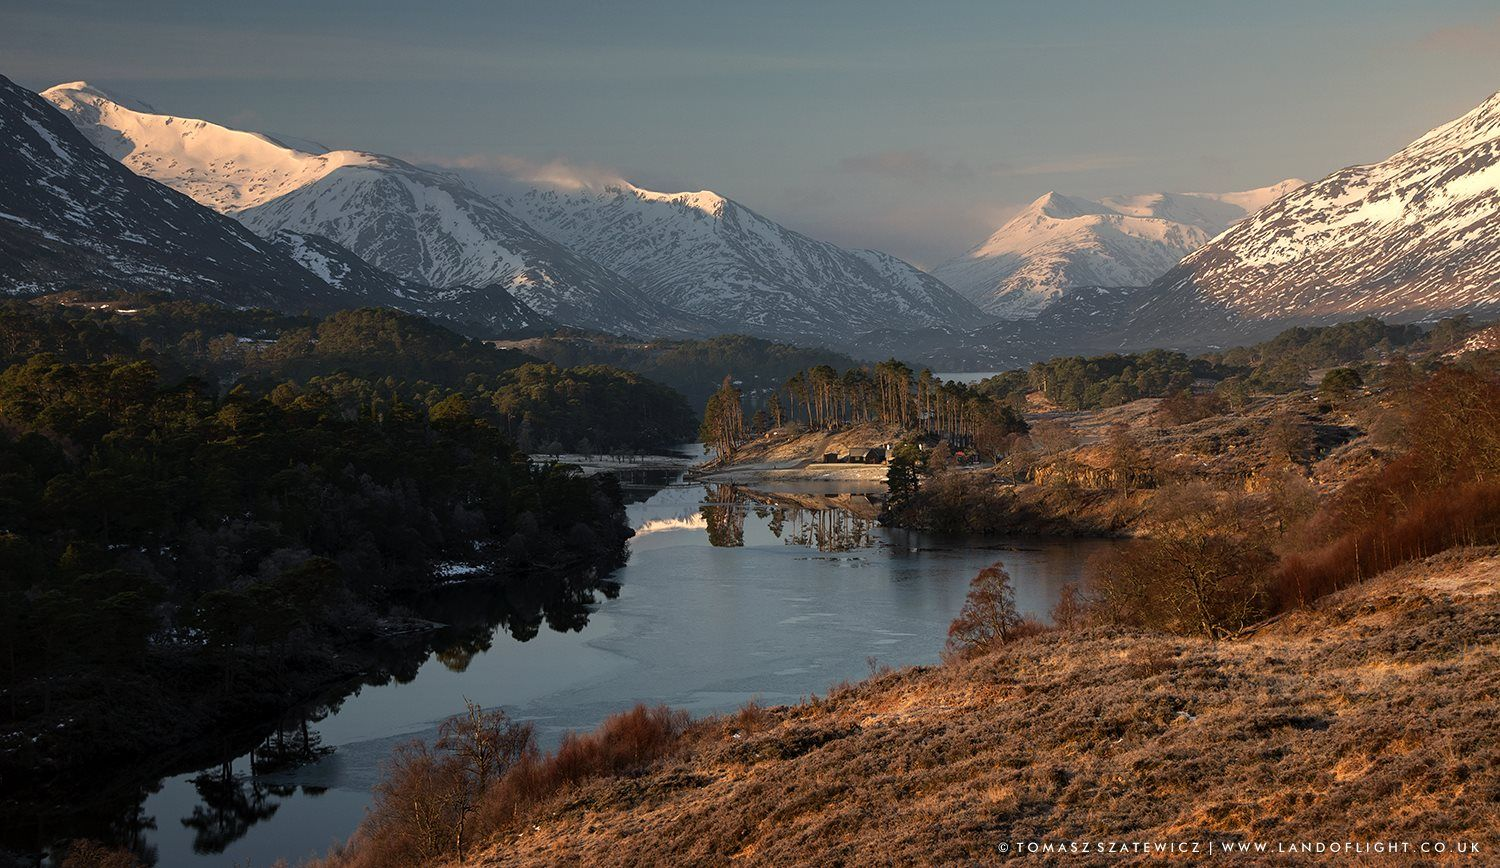 Loch Affric and surrounding mountains in morning, Glen Affric, Scotland. Land of Light - Tomasz Szatewicz Photography